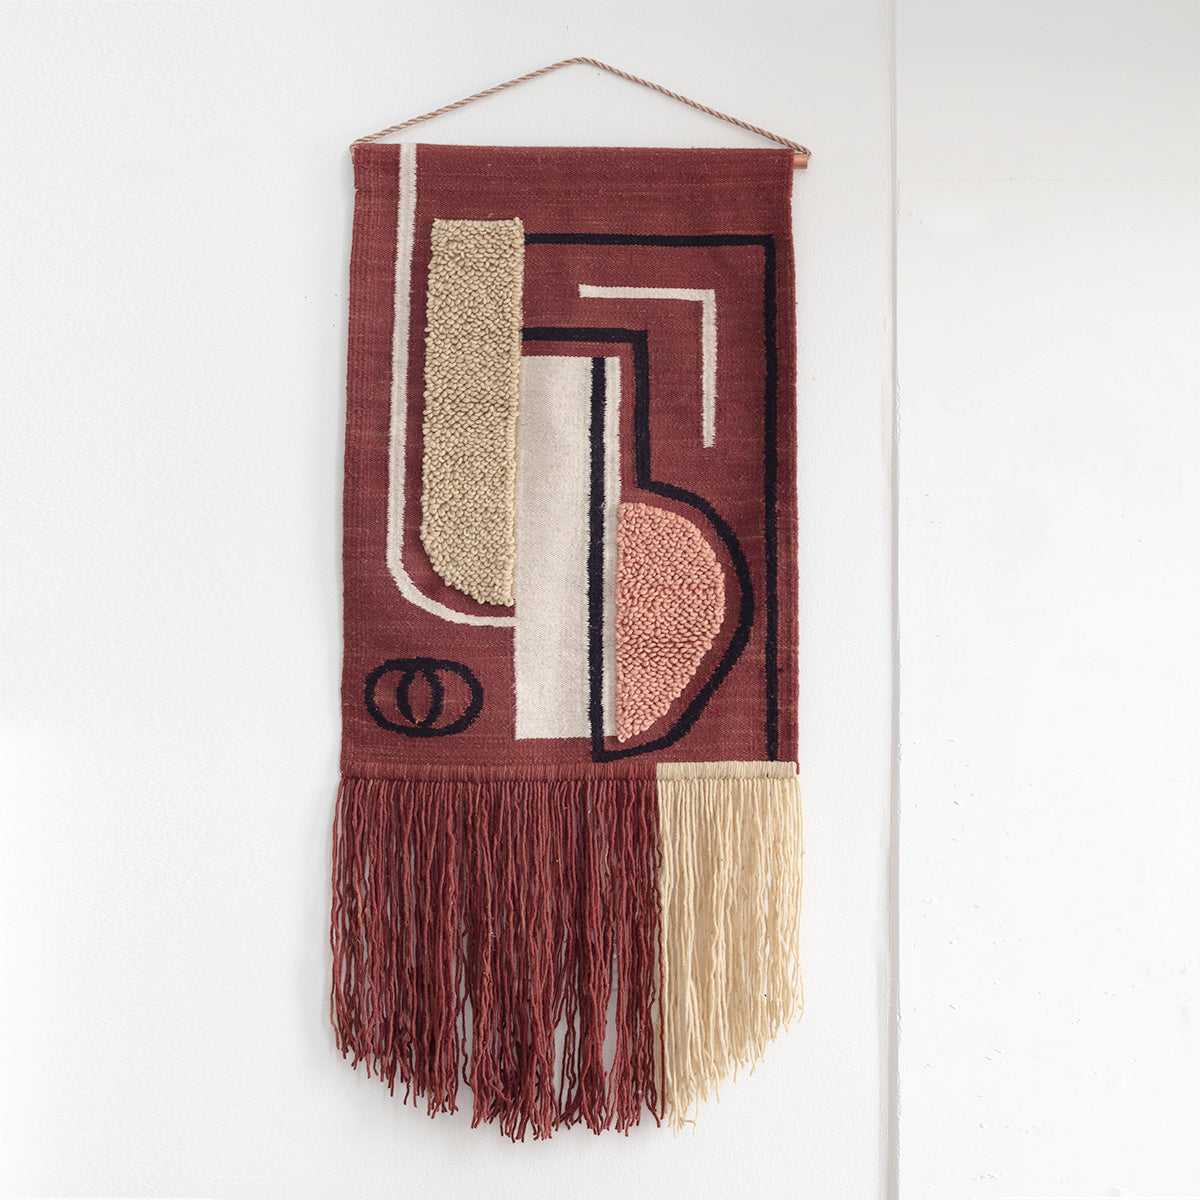 "TAPESTRY HAND WOVEN WALL HANGING ""ABSTRACTO"" BY CURA COLLECTION"